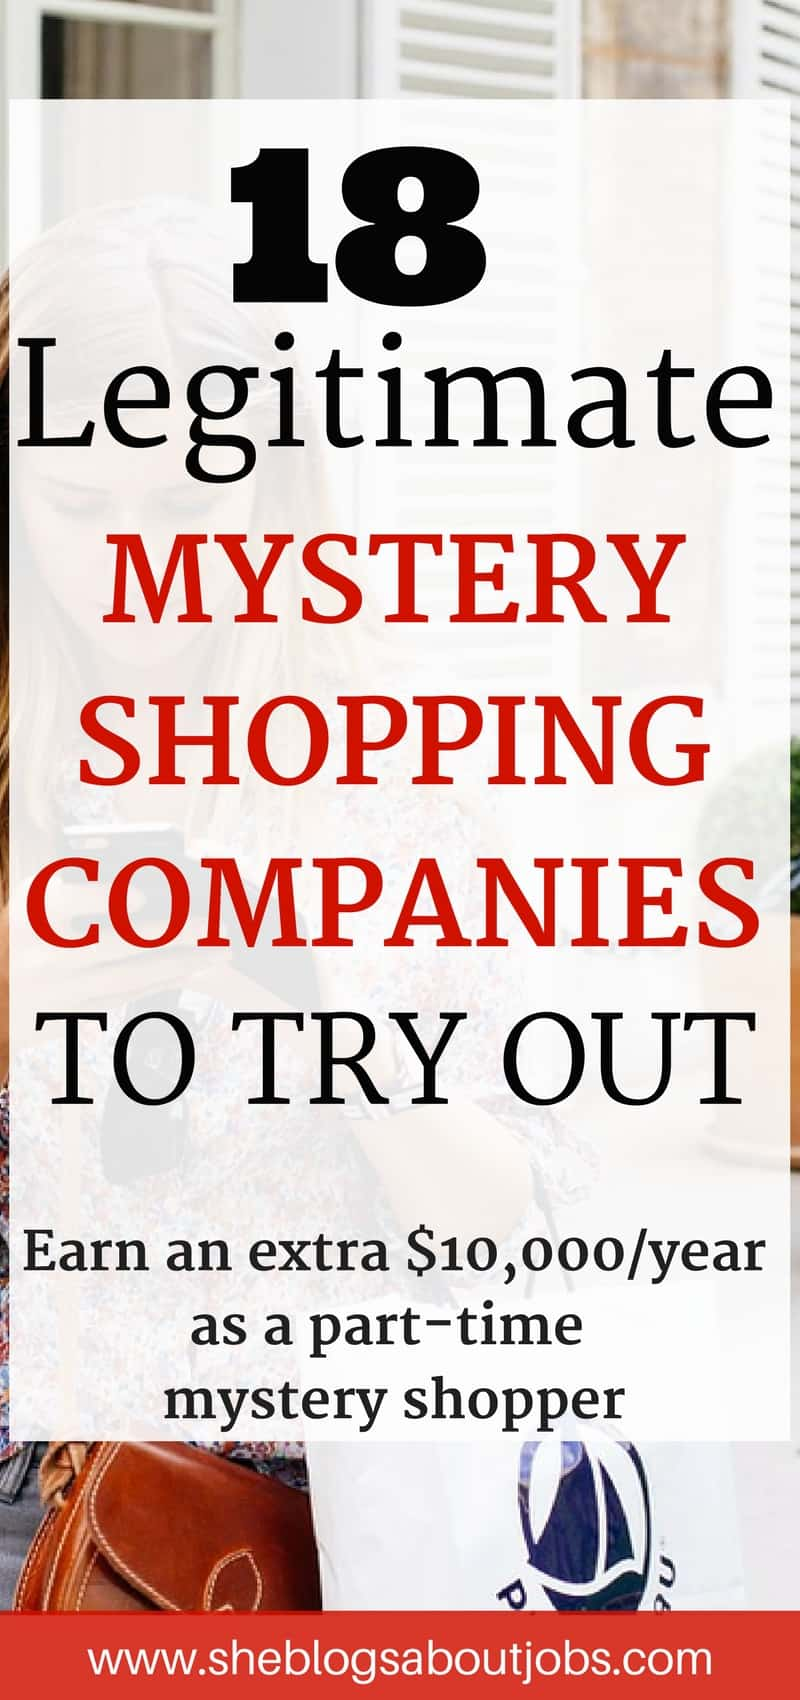 make easy money| Make money from home | Mystery shopping | Mysteryy shopper jo